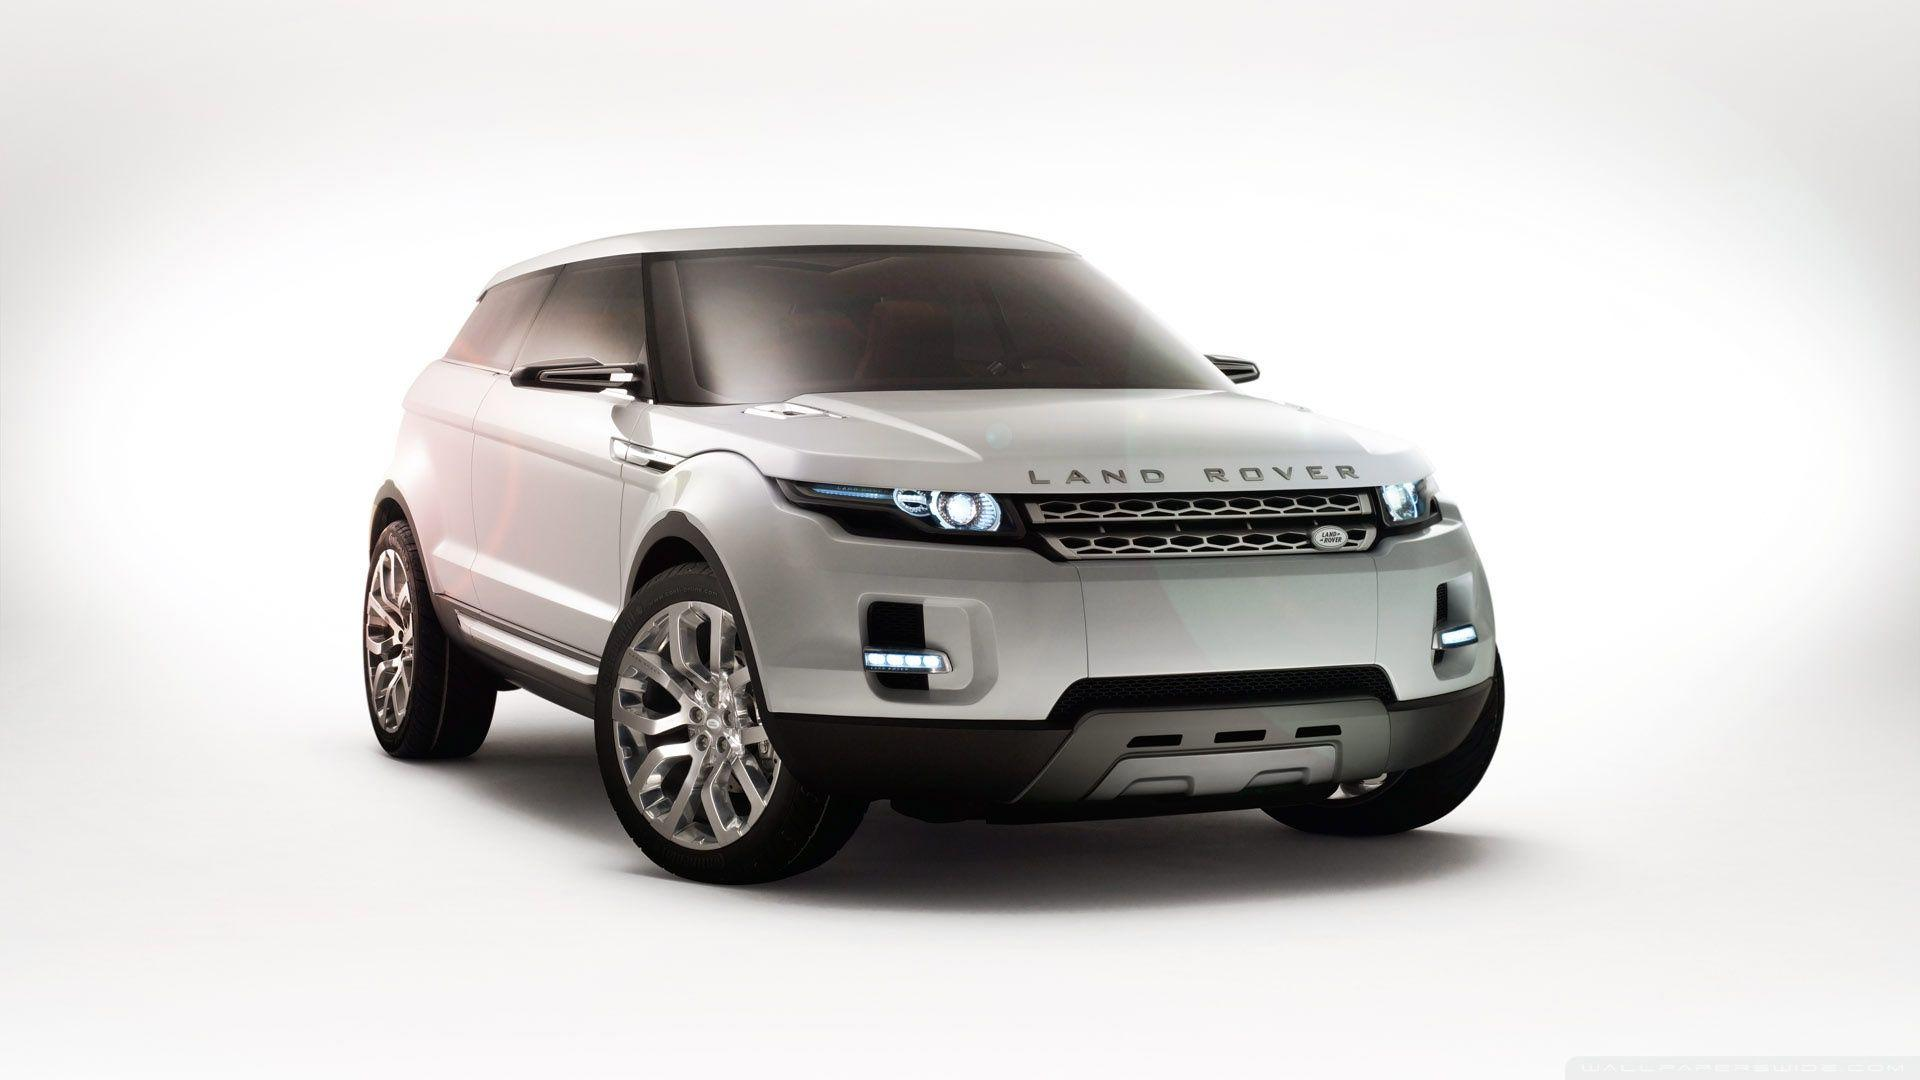 Land Rover HD desktop wallpaper : Widescreen : High Definition ...